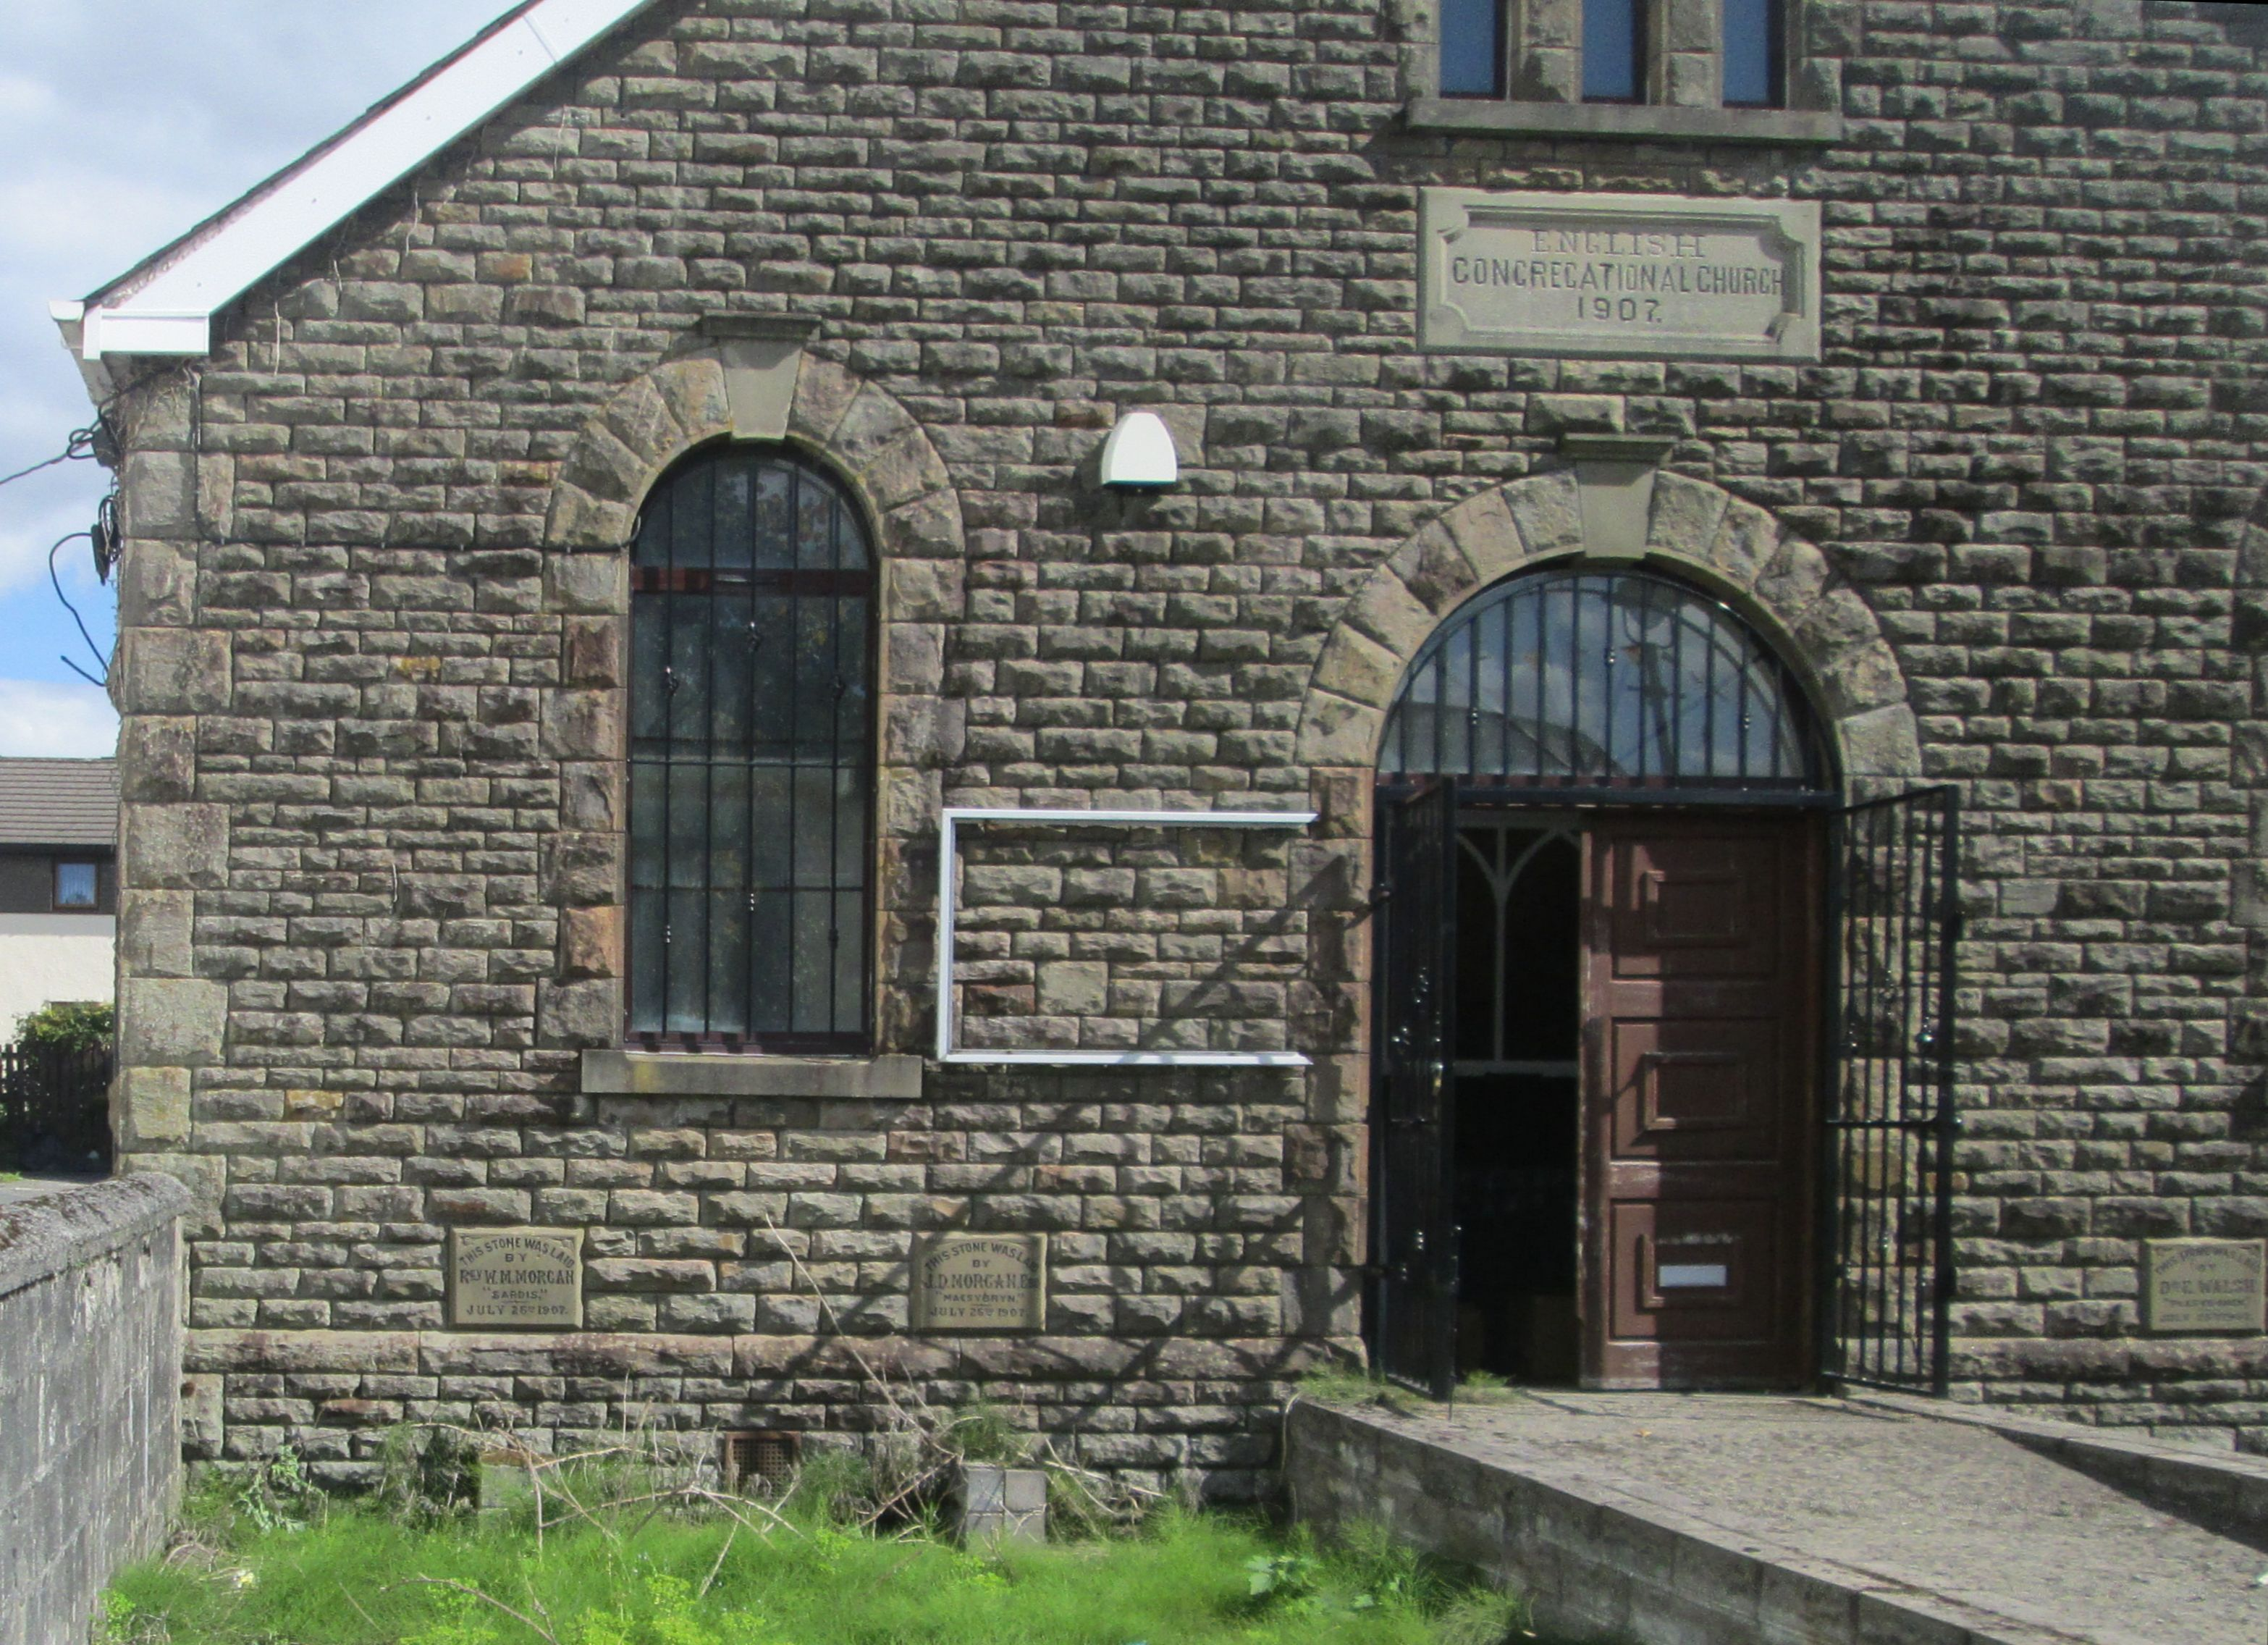 The left side of the building of the English Congregational Church